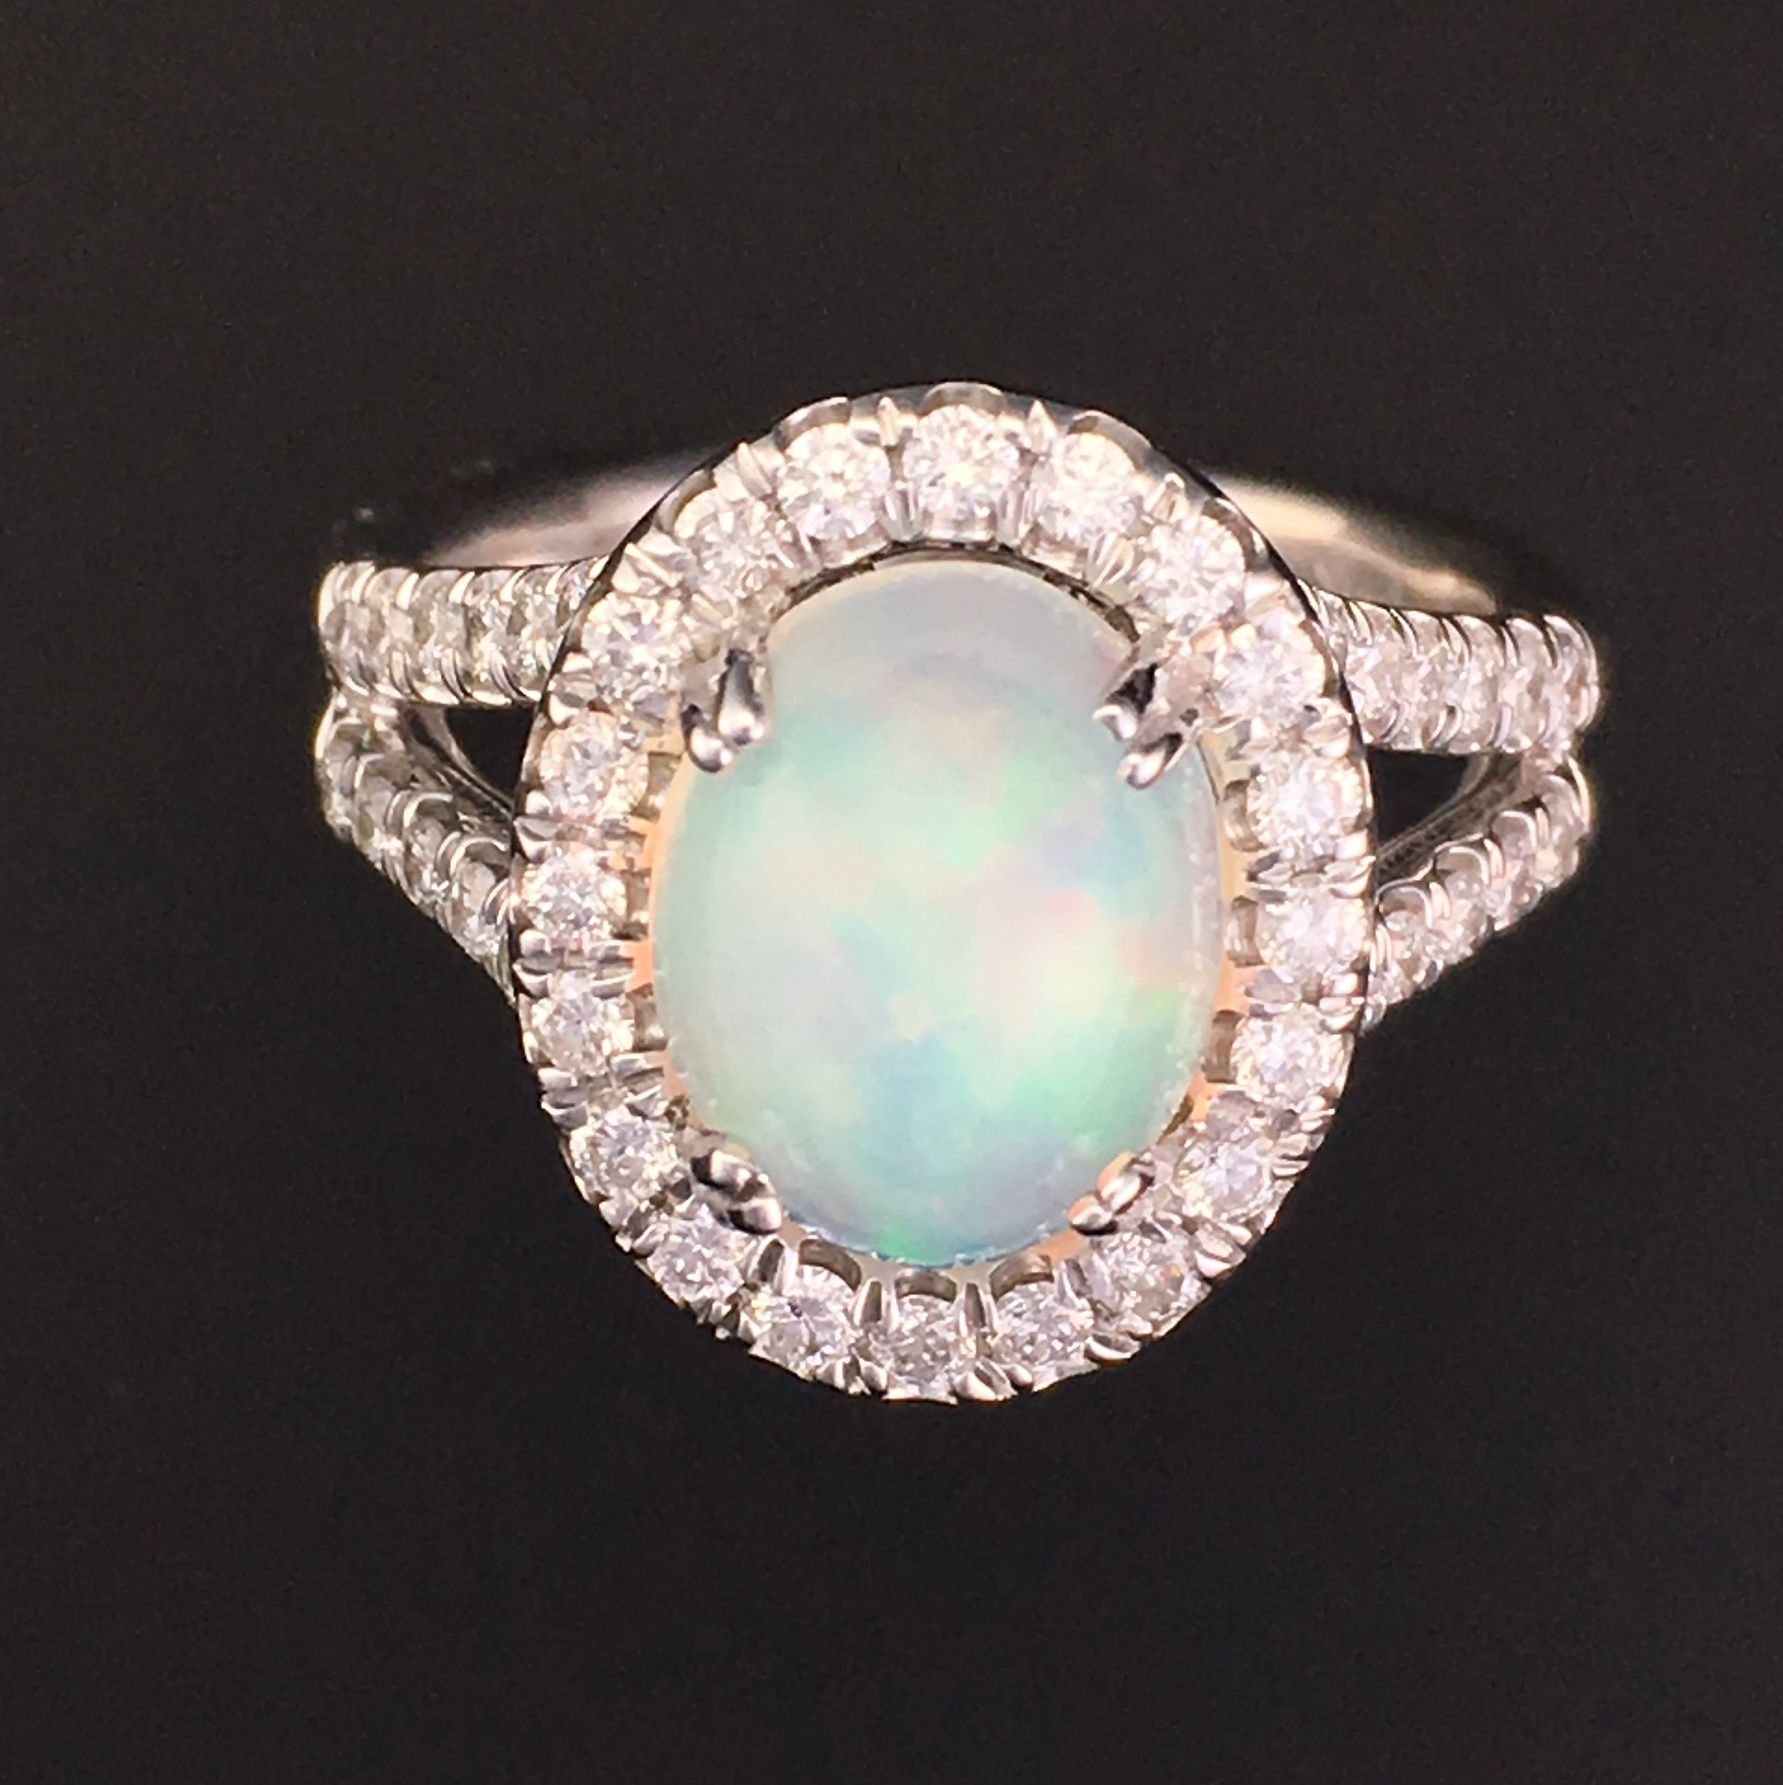 buy a custom made oval opal halo engagement ring w